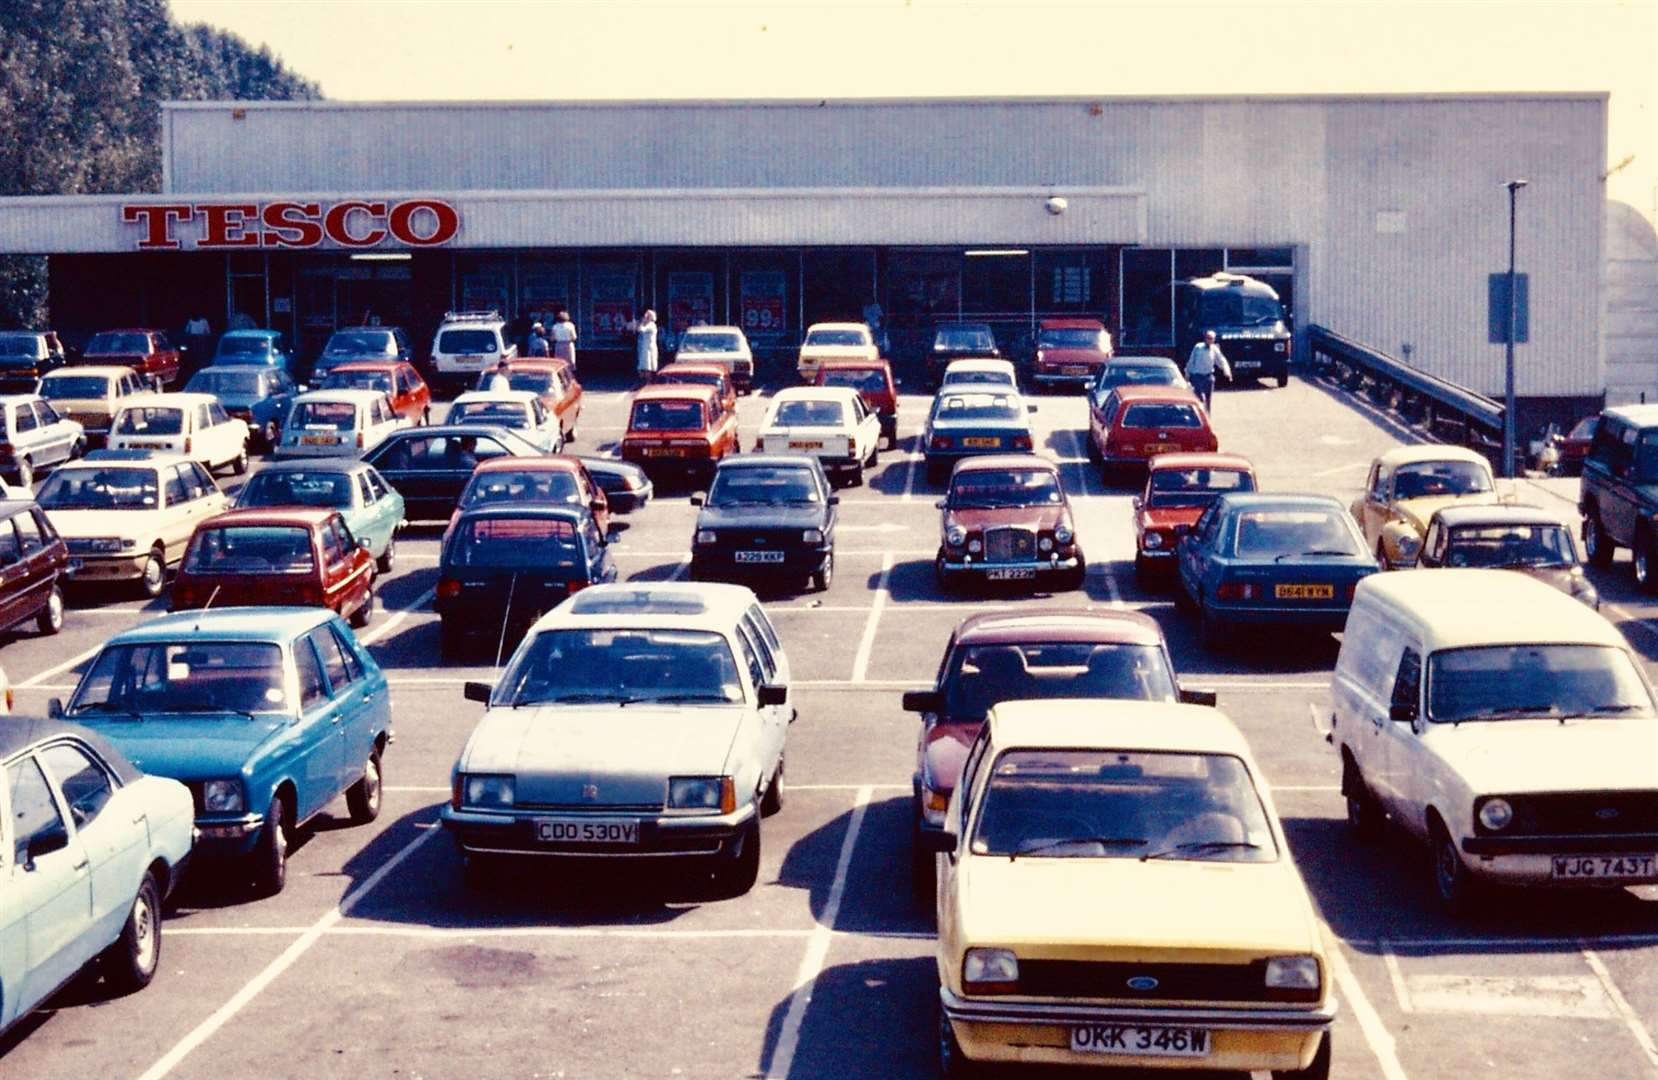 The store pictured in 1987 when it was Tesco. Picture: Steve Salter